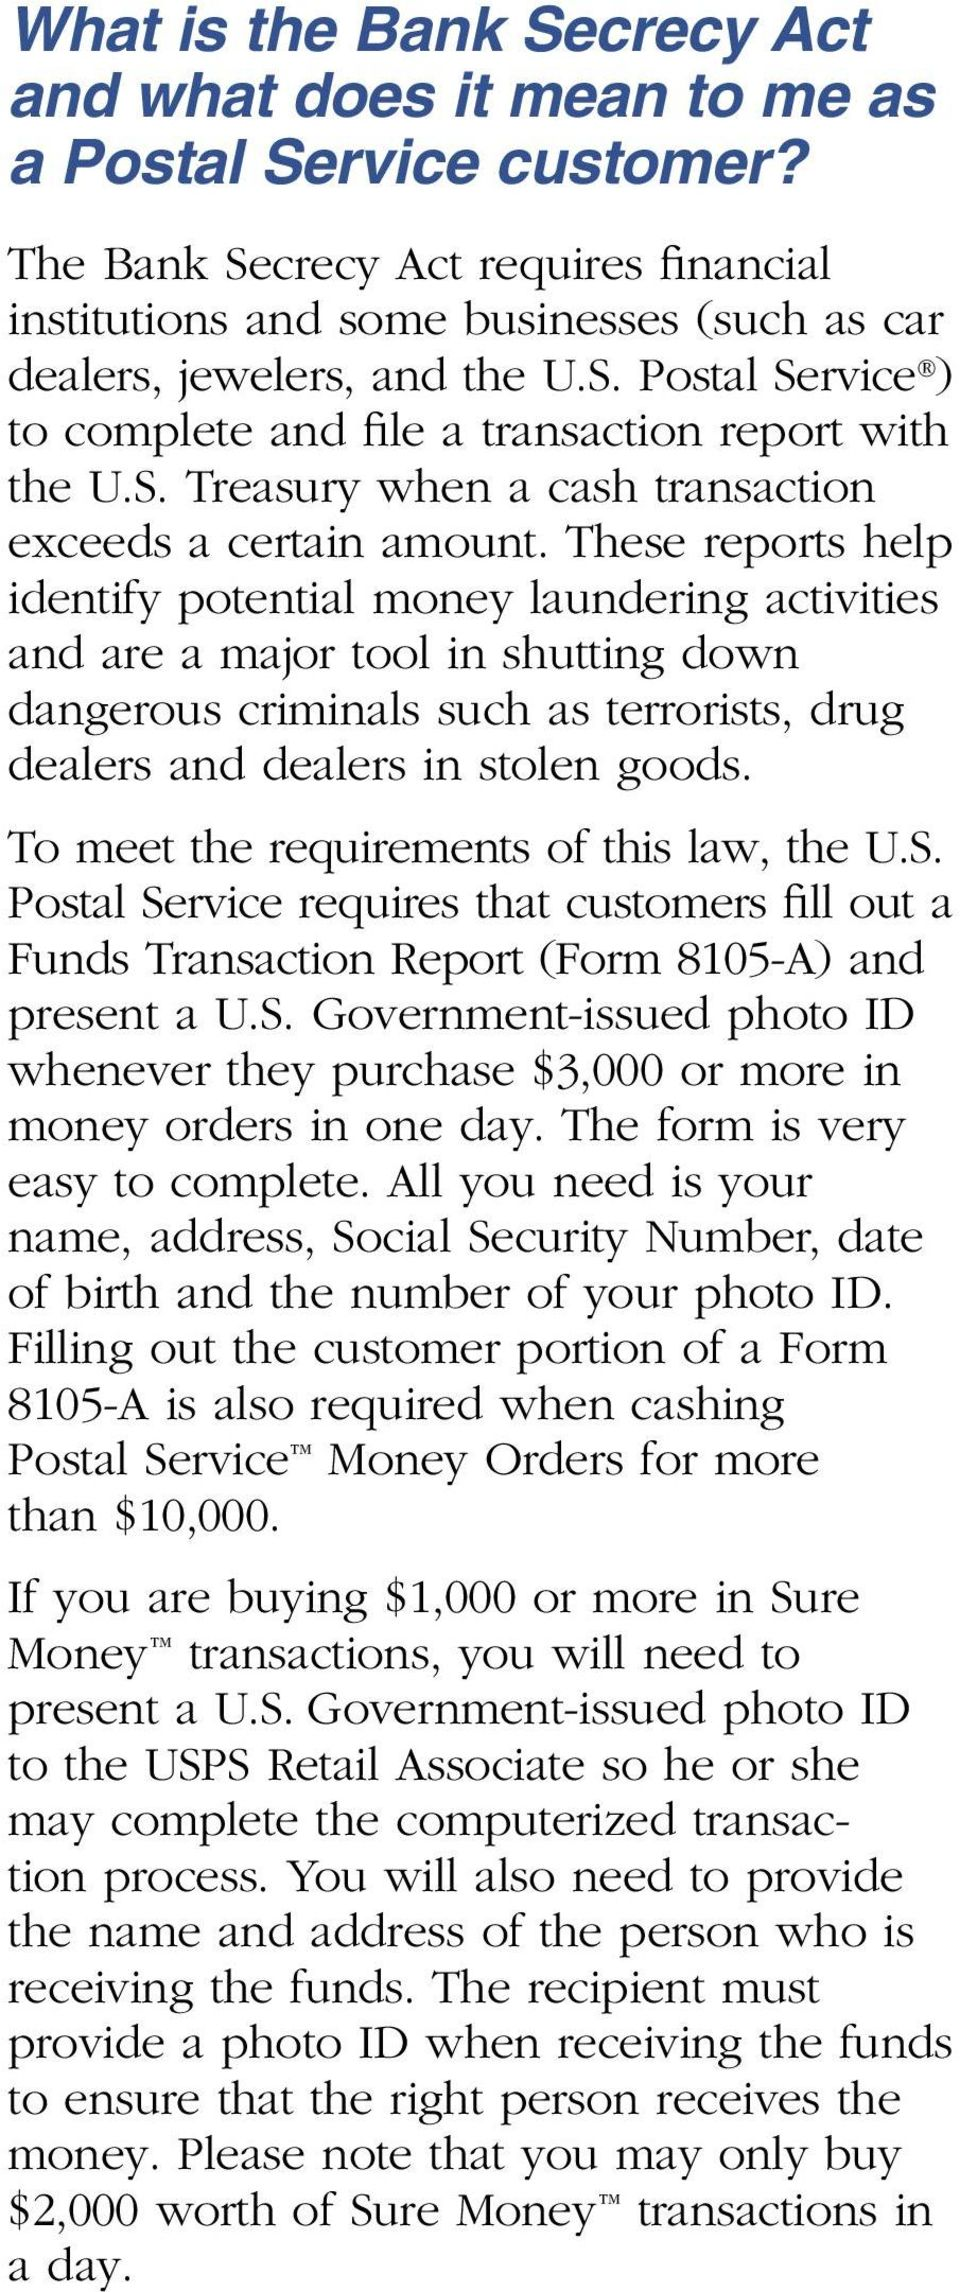 These reports help identify potential money laundering activities and are a major tool in shutting down dangerous criminals such as terrorists, drug dealers and dealers in stolen goods.